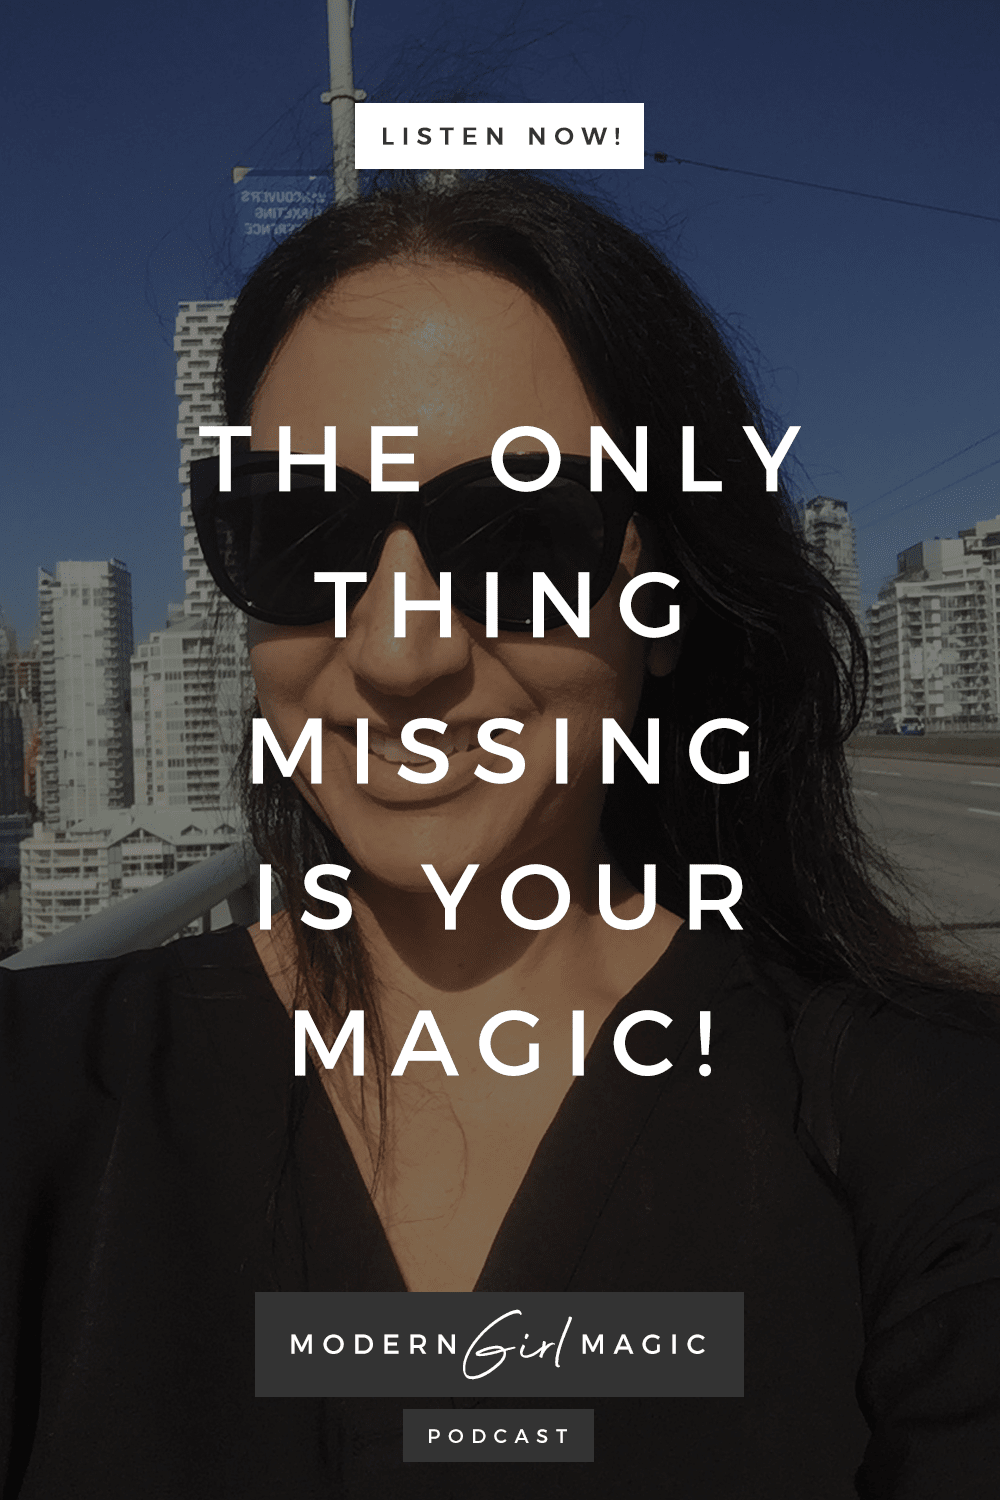 Modern Girl Magic Episode 5: What's Missing Is Your Magic